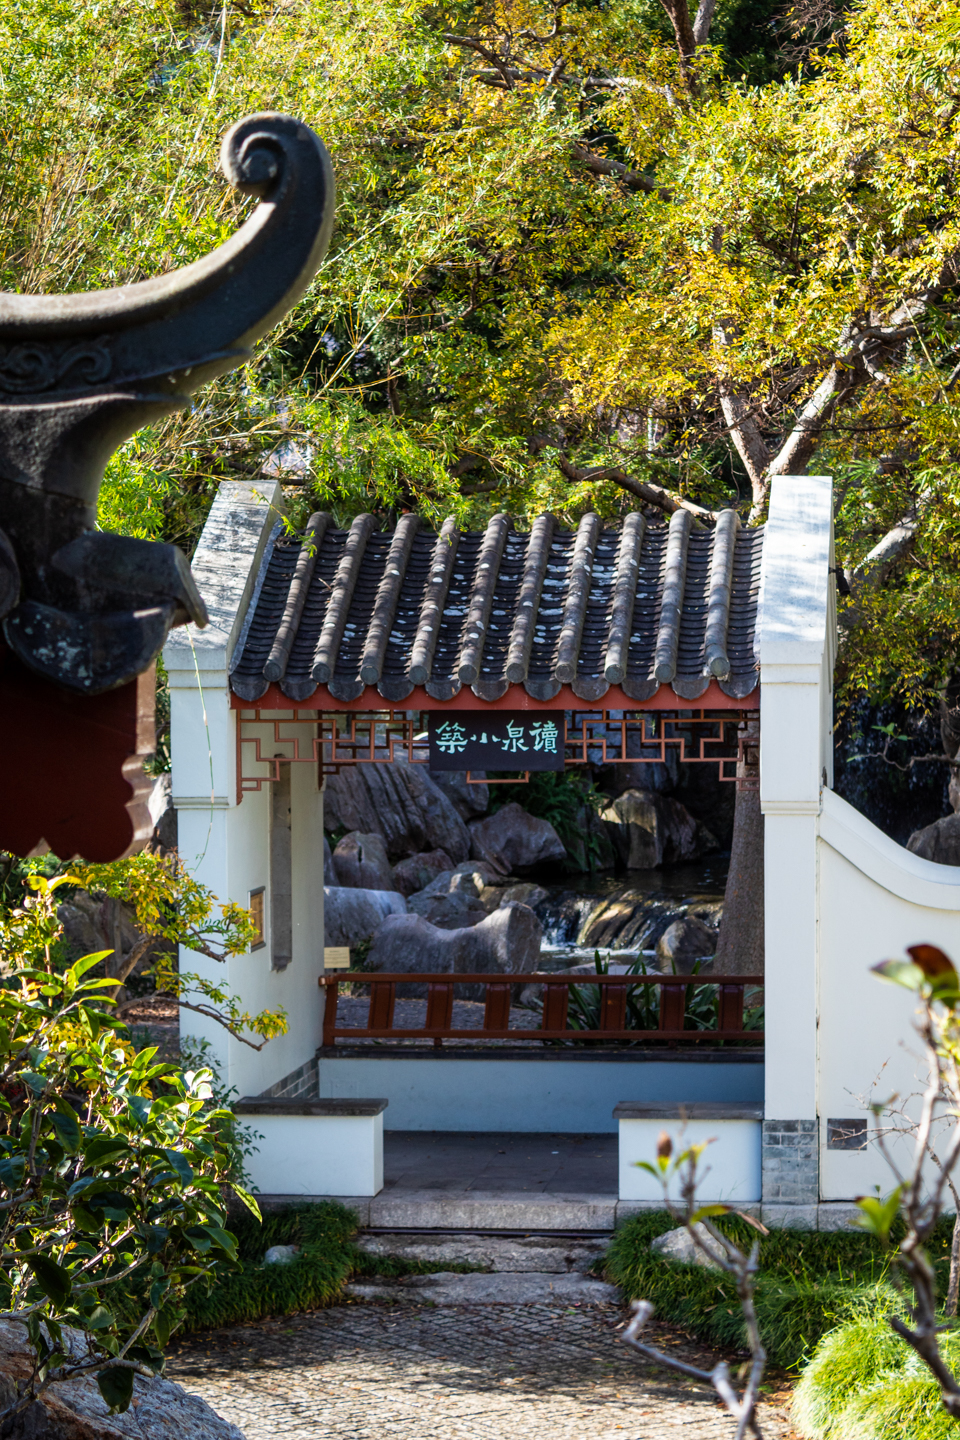 CRH_2018_CHINESE_GARDEN_OF_FRIENDSHIP_3039.jpg